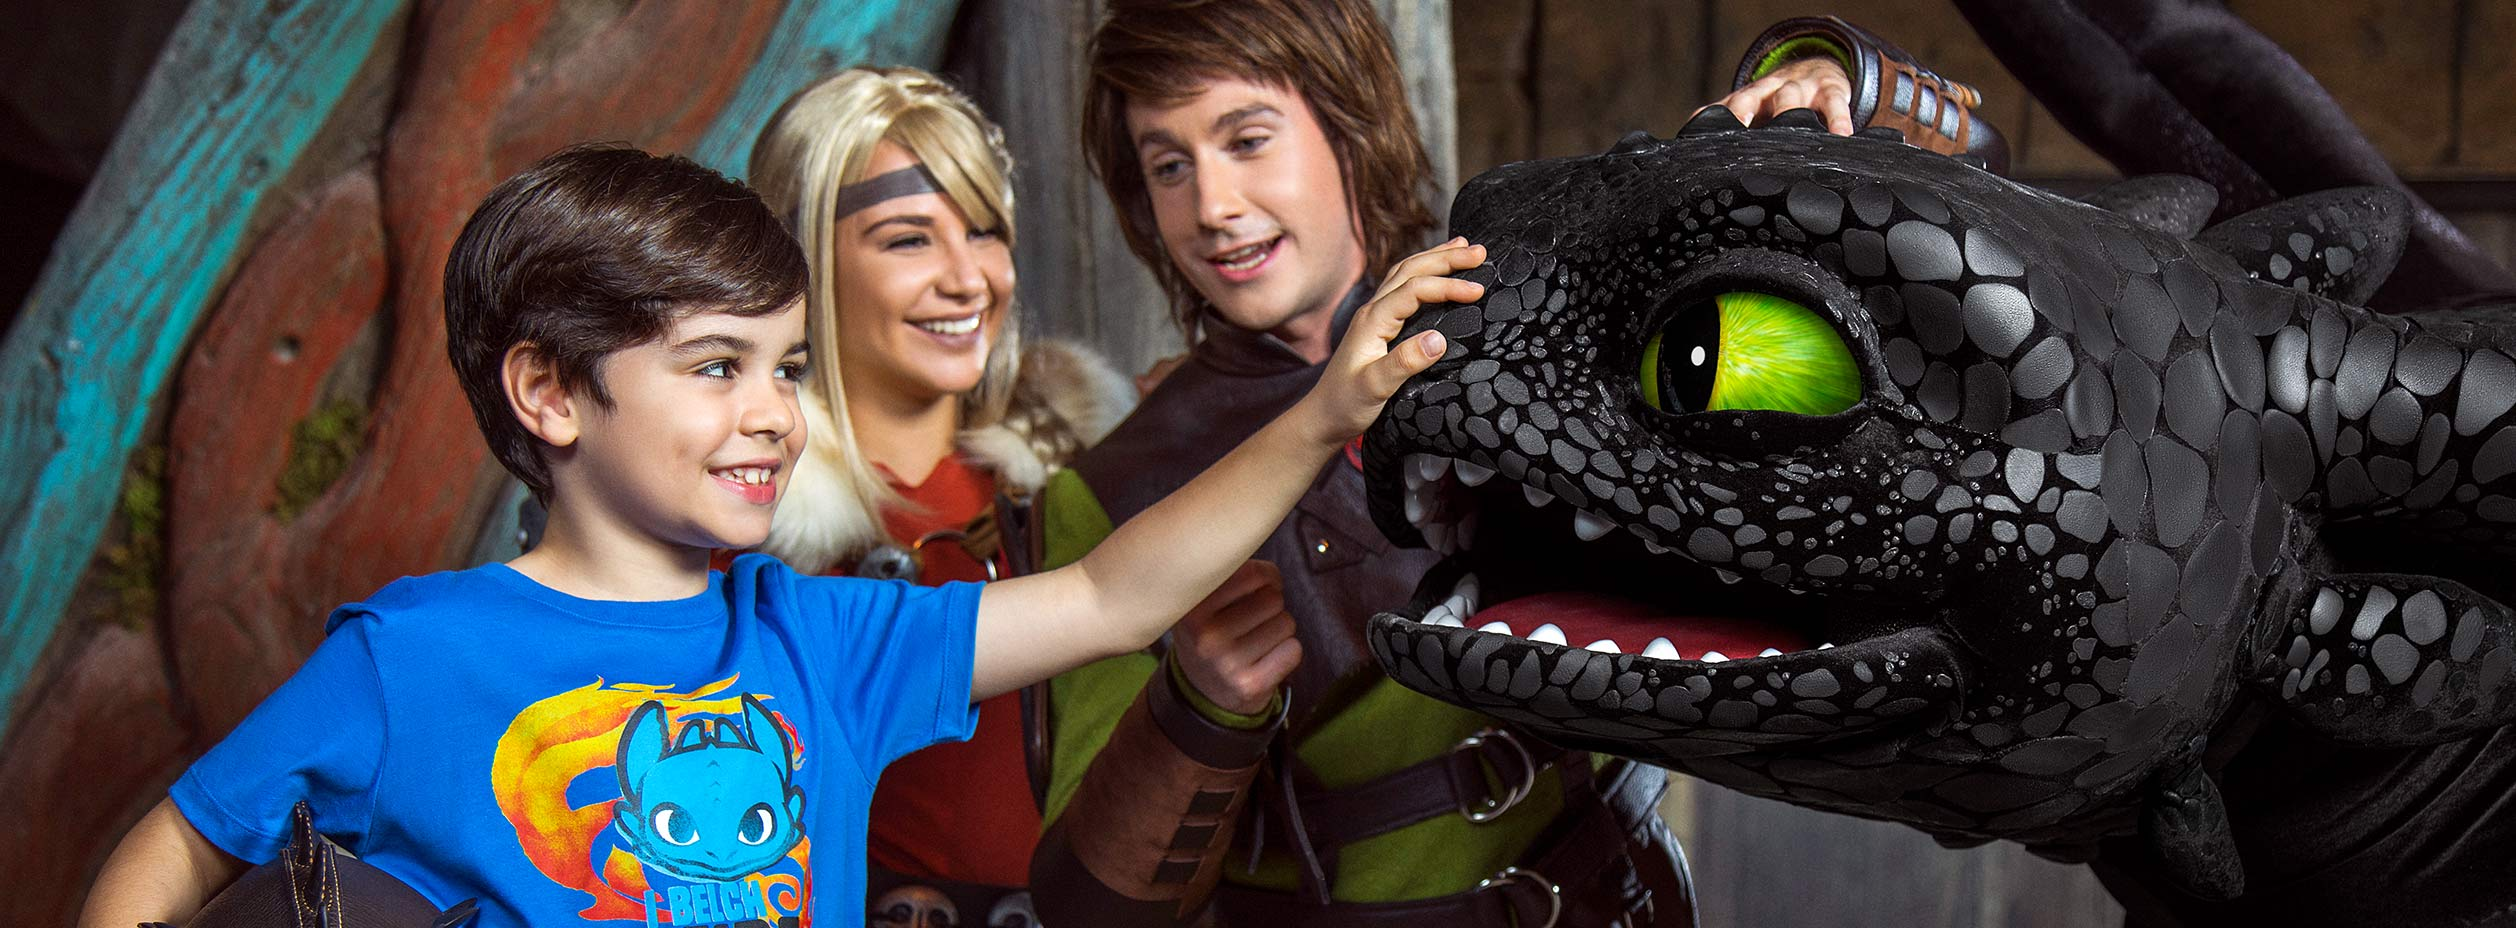 Meet Greet Toothless Hiccup And Astrid Motiongate Dubai